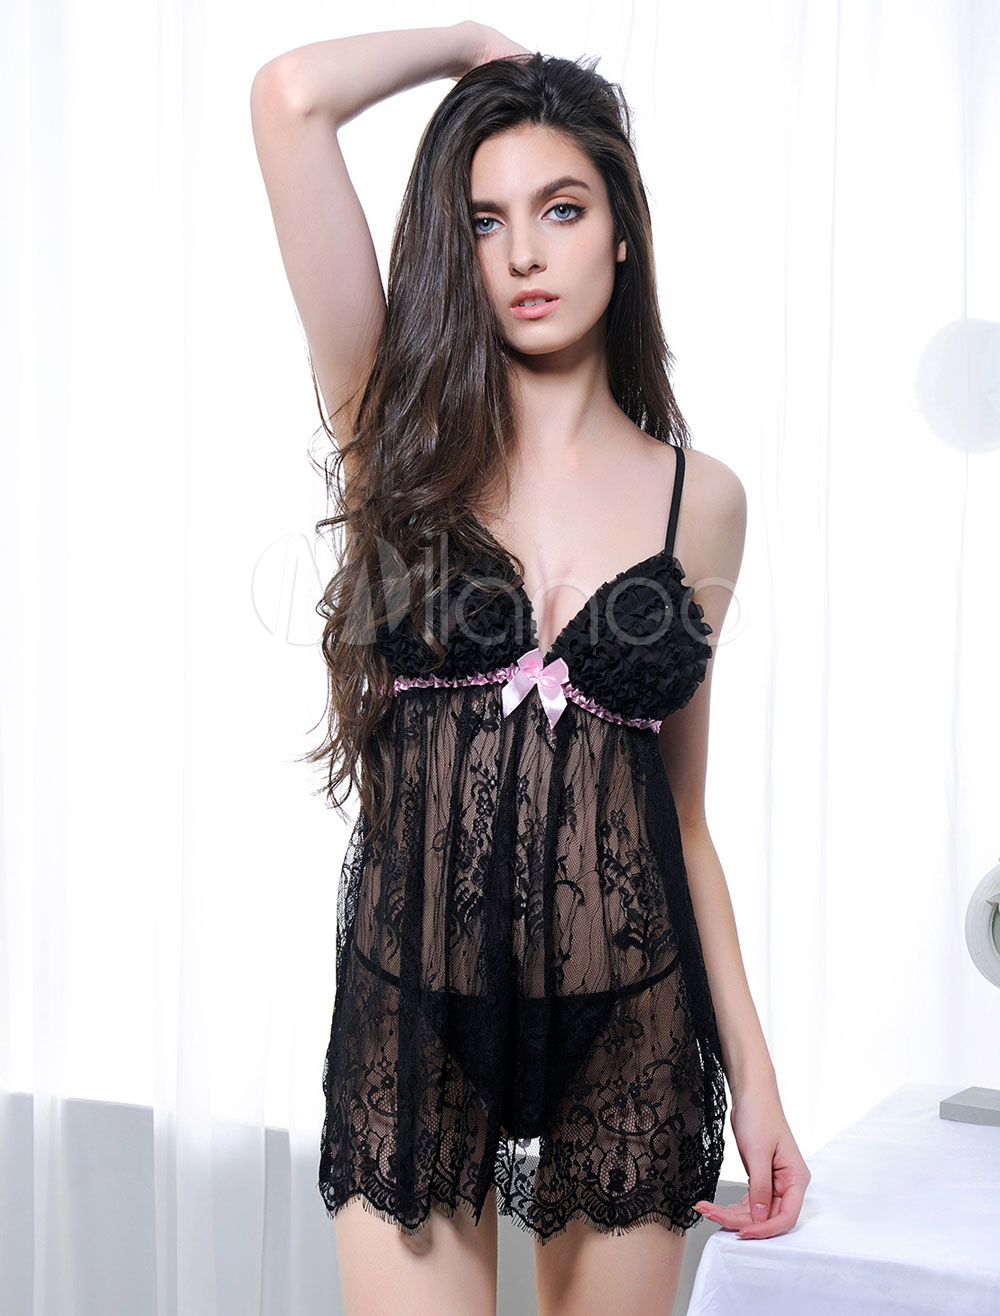 177c0e39bdd Black Sexy Lingerie Set Lace Ruffles Two Tone Babydoll Dress With Panties  For Women